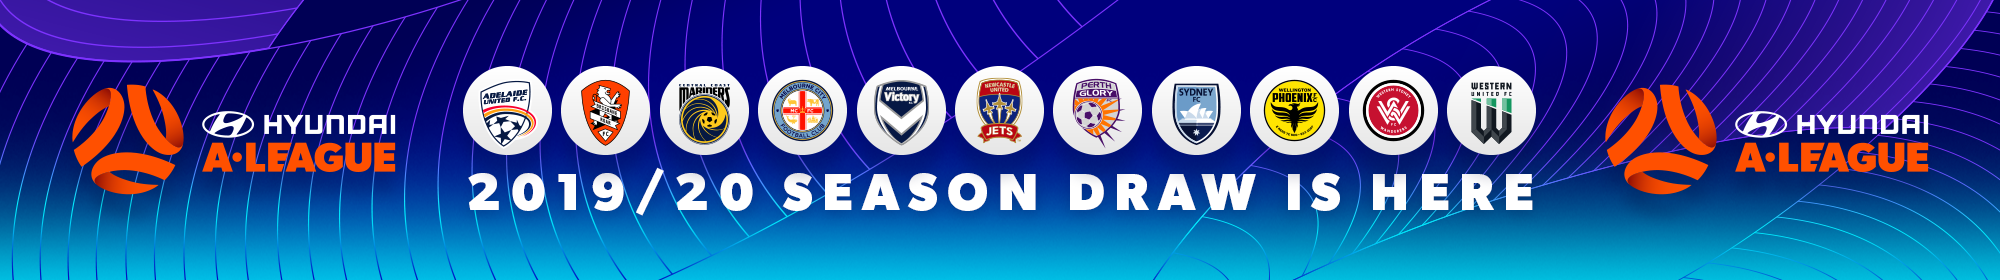 Hyundai A-League 2019/20 Season Draw Is Here